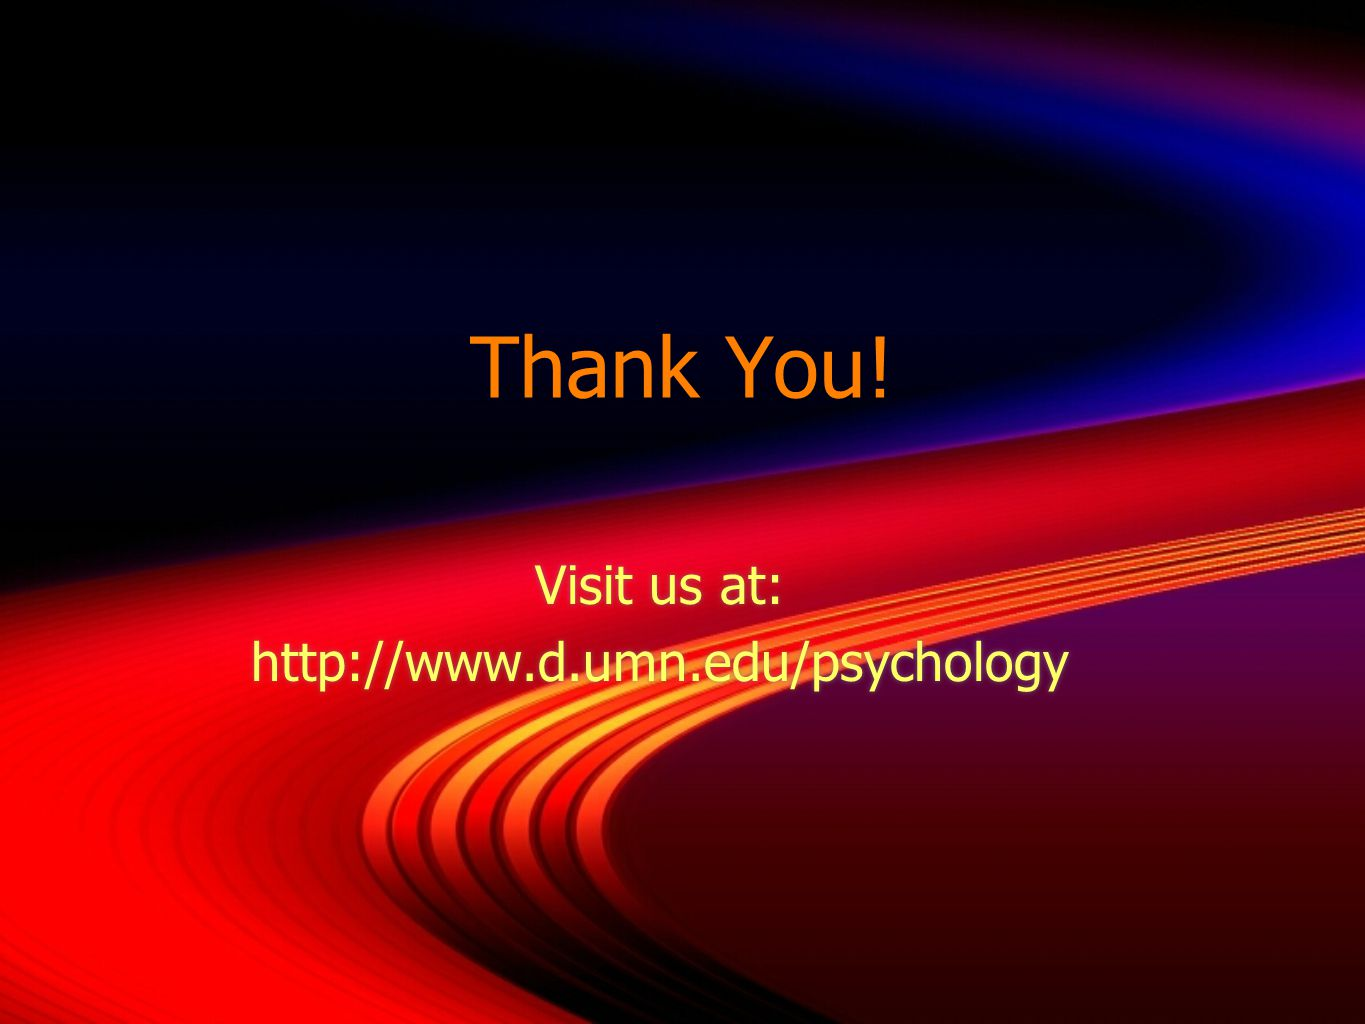 Thank You! Visit us at: http://www.d.umn.edu/psychology Visit us at: http://www.d.umn.edu/psychology